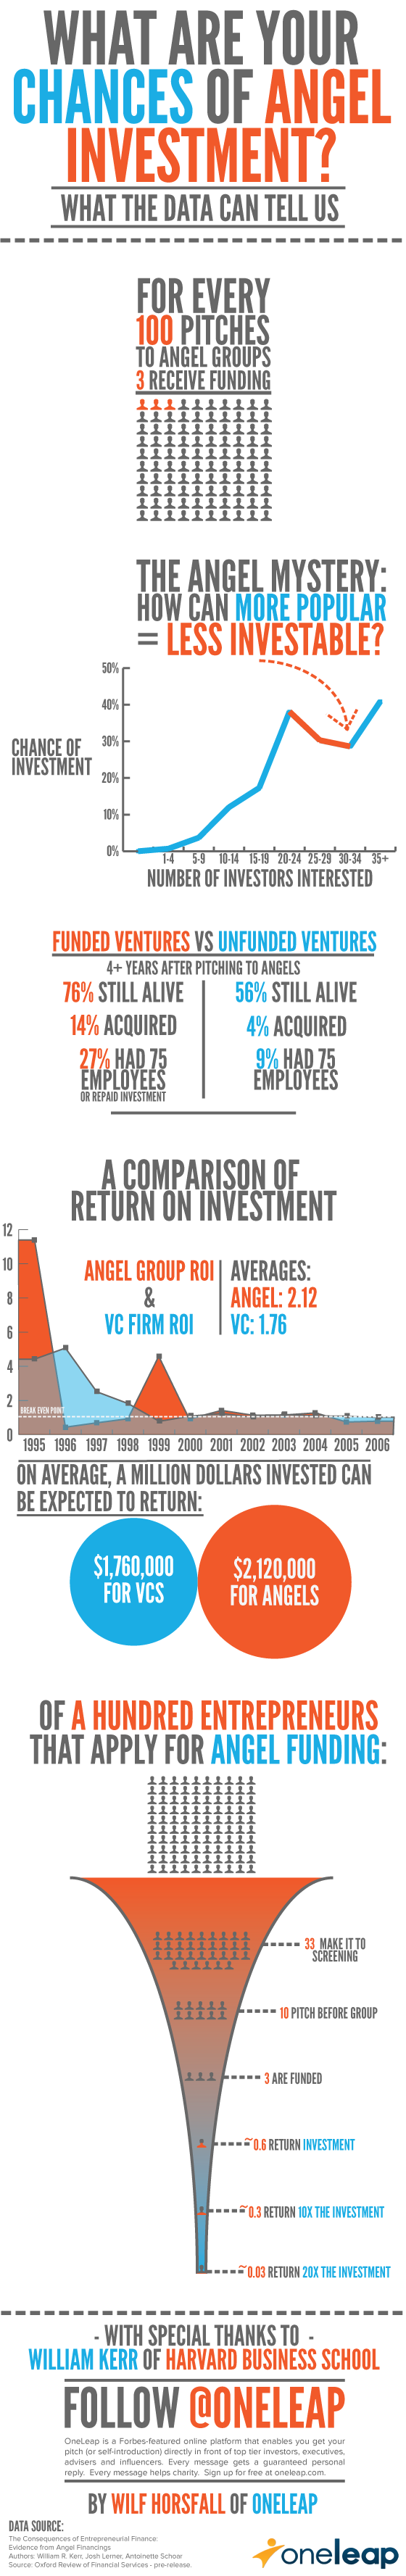 Infographic - What are your chances of angel investment? This infographic looks at your chances of raising funding from angel investors, their chances of success vs. unfunded companies, and the return on investment for venture capital firms vs. angel investors.